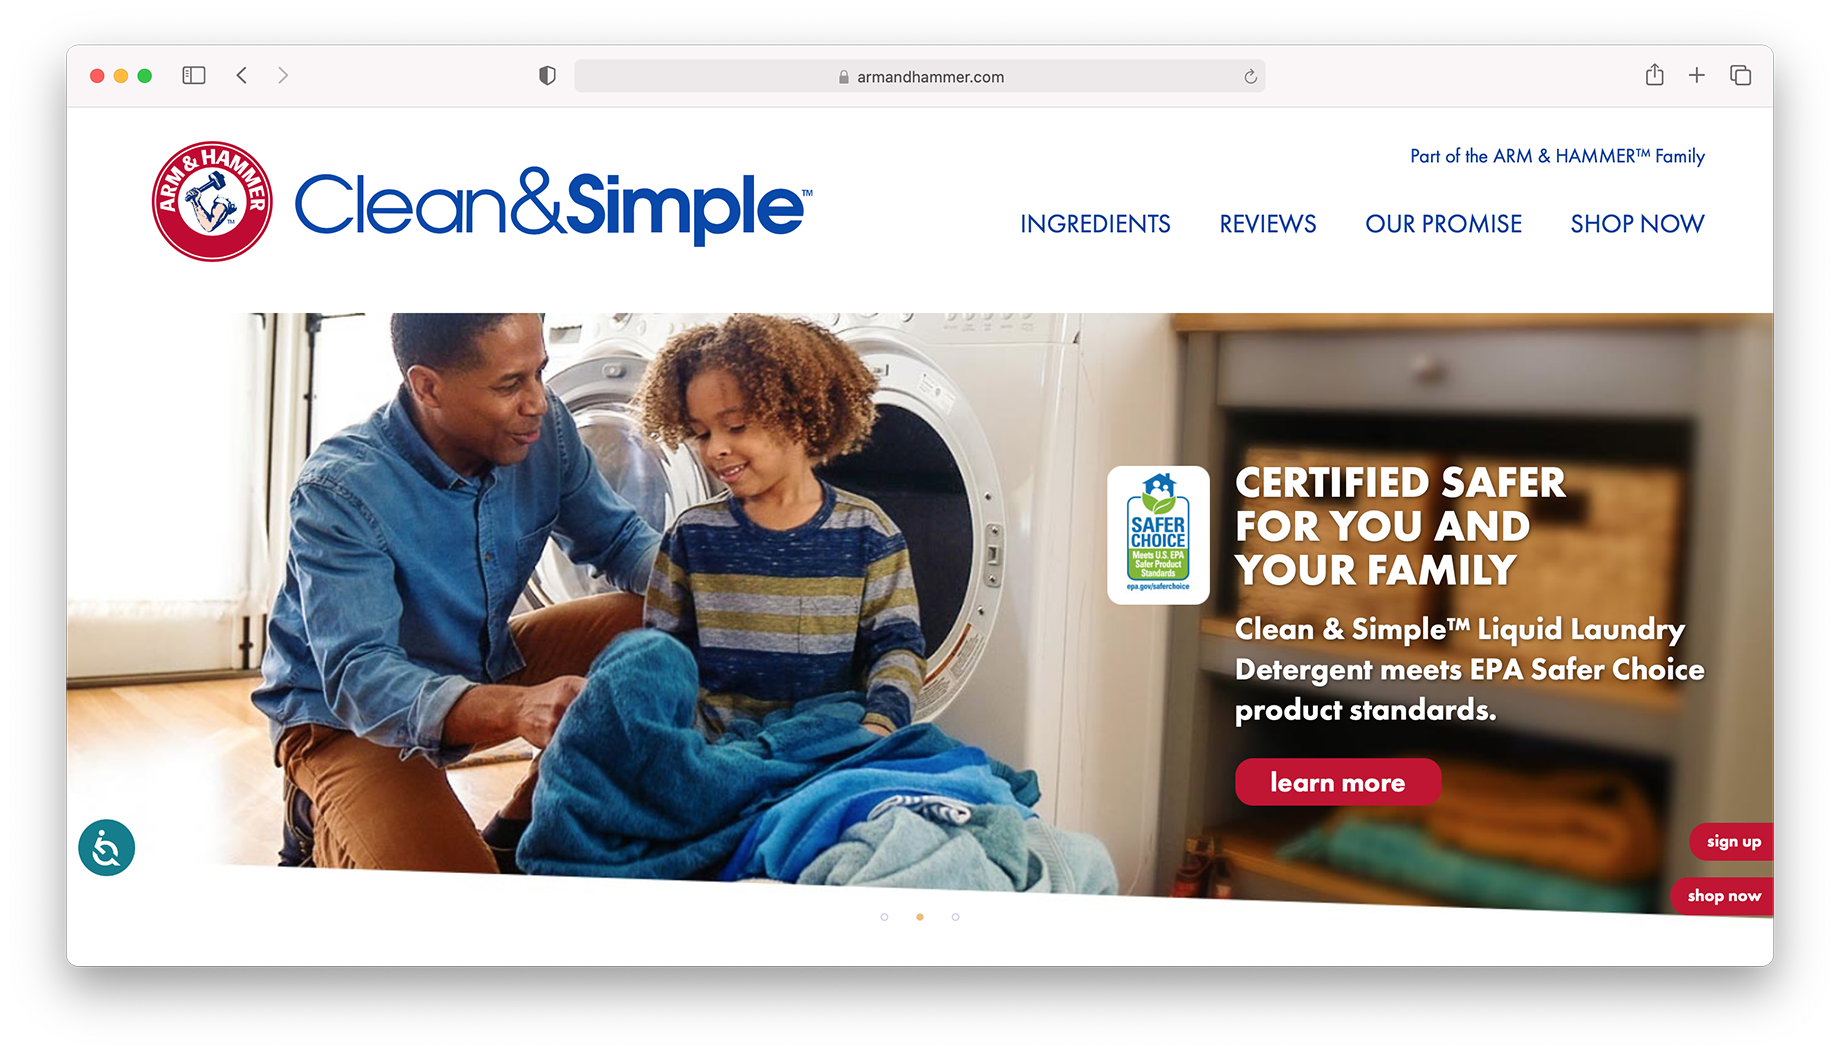 Screen shot of Arm & Hammer website clean & simple laundry campaign shot by Inti St. Clair